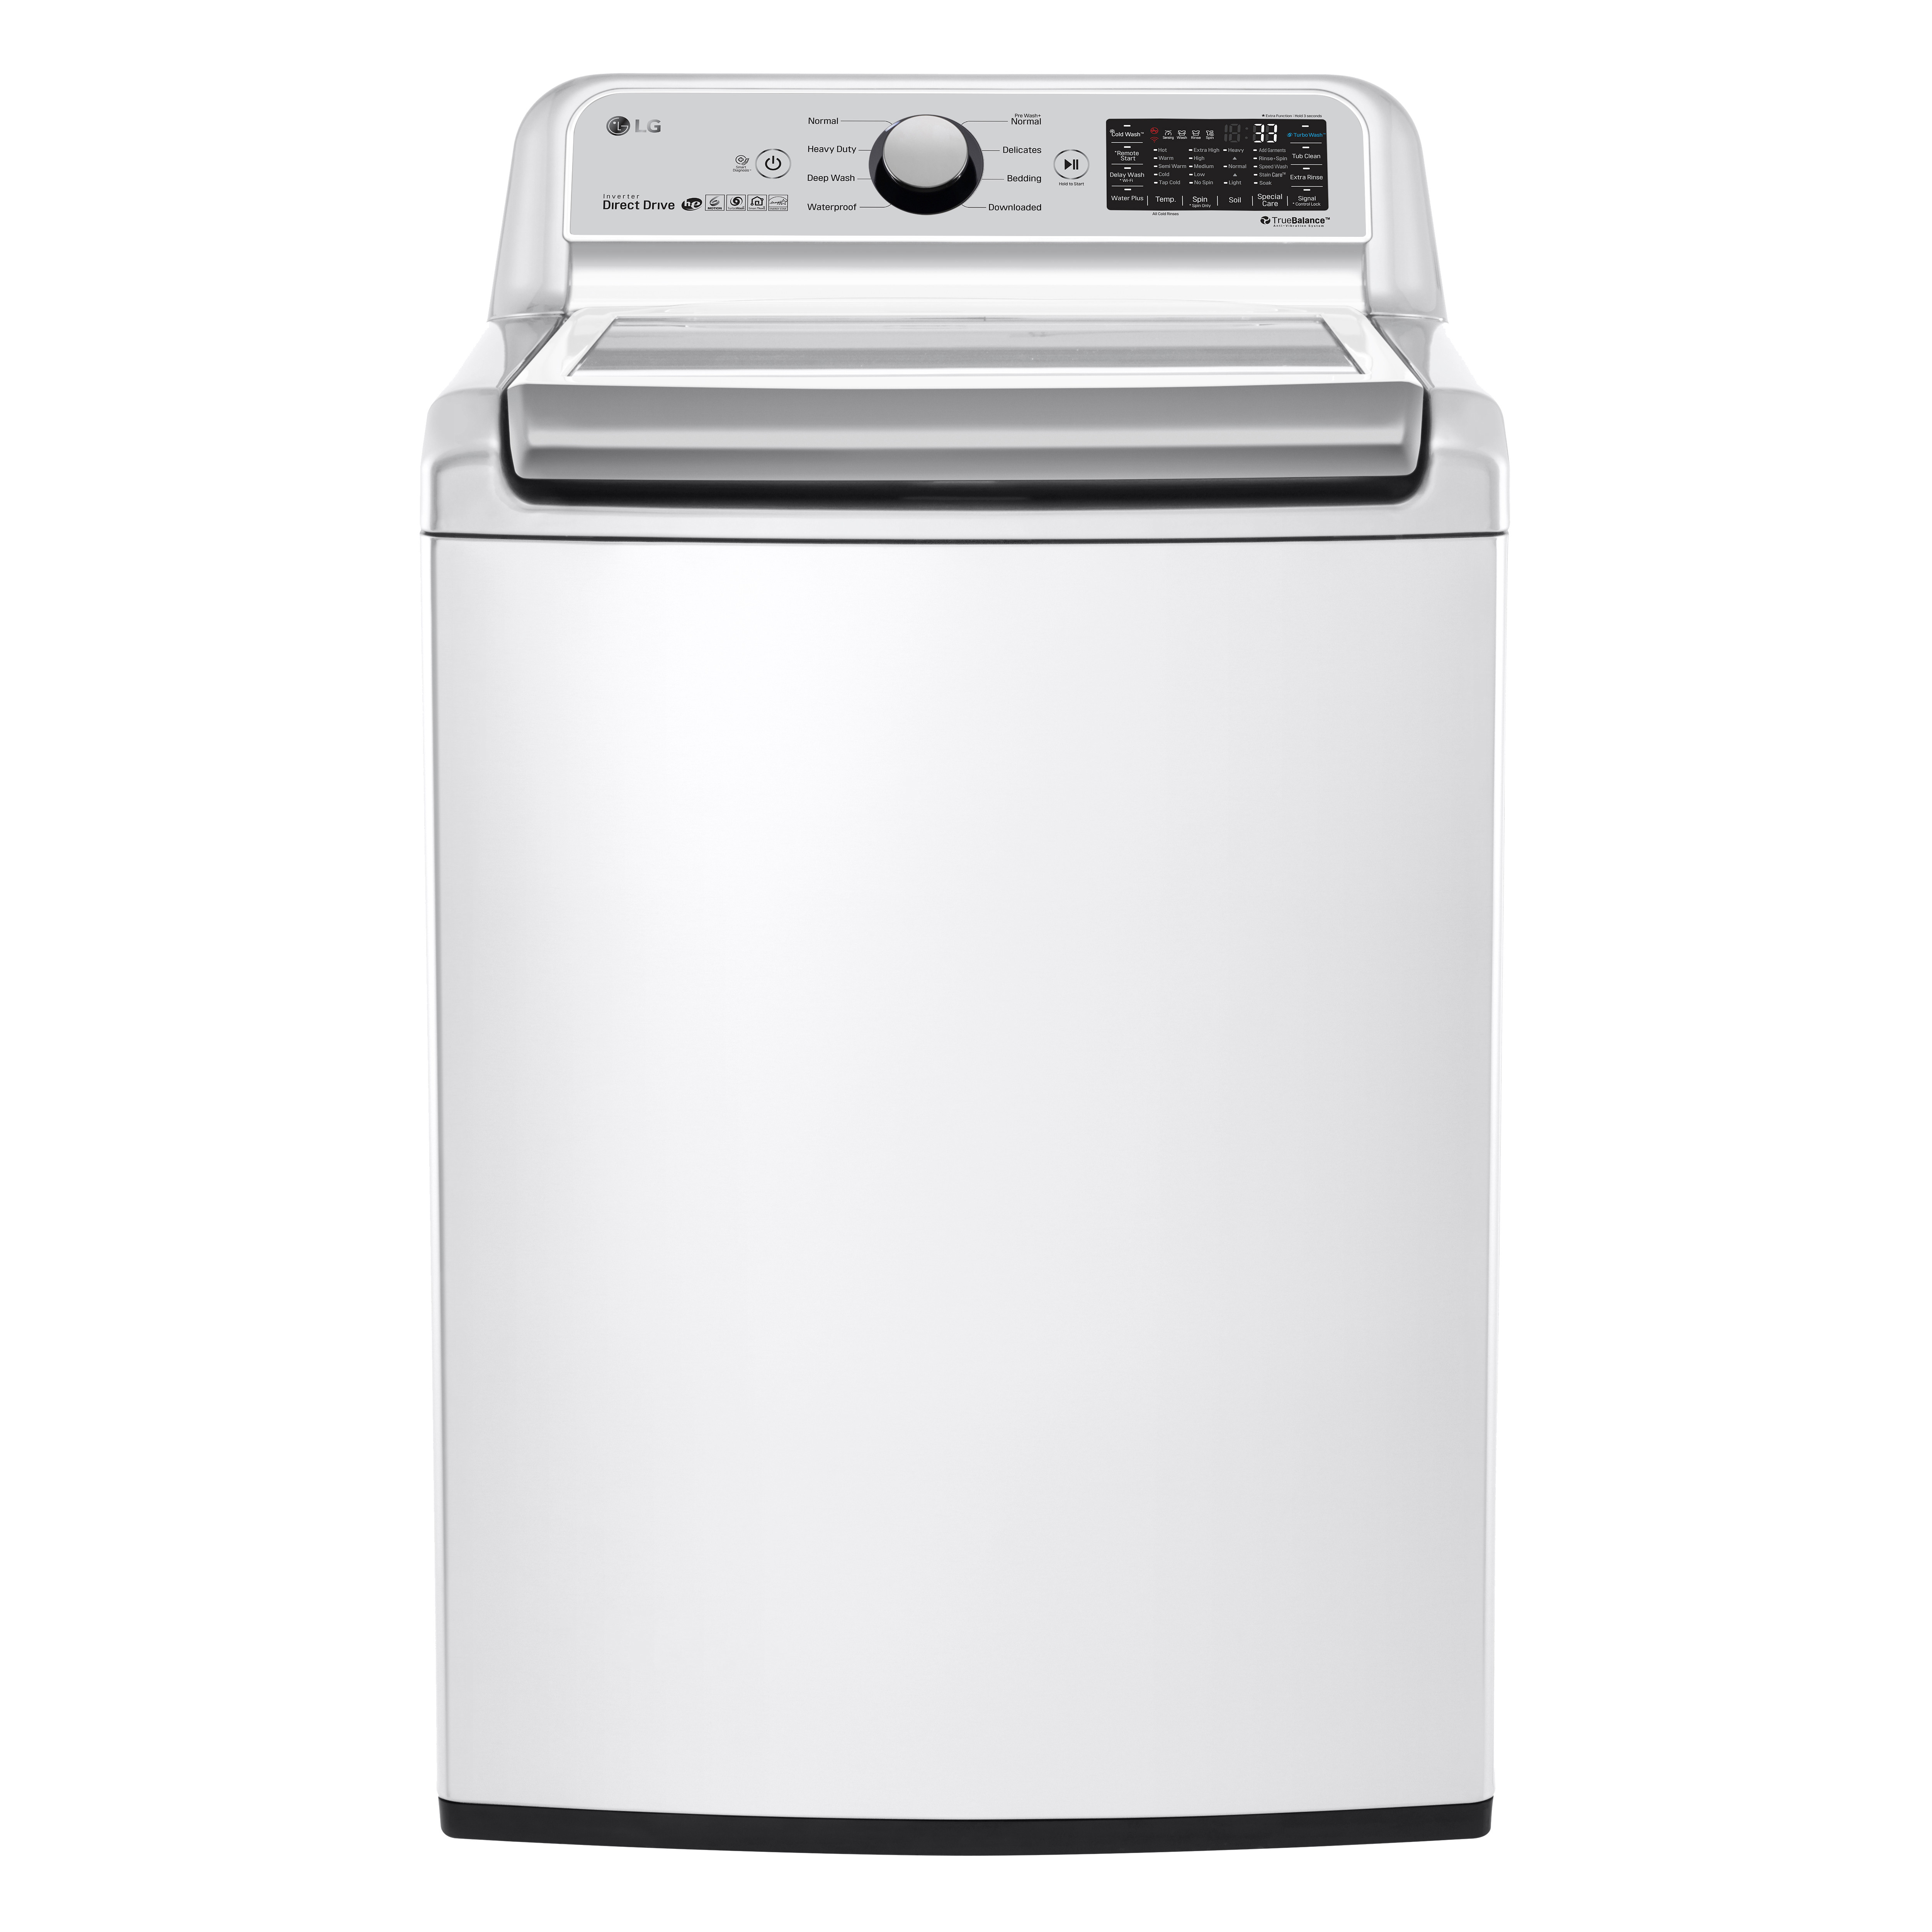 Household Washing Machine image